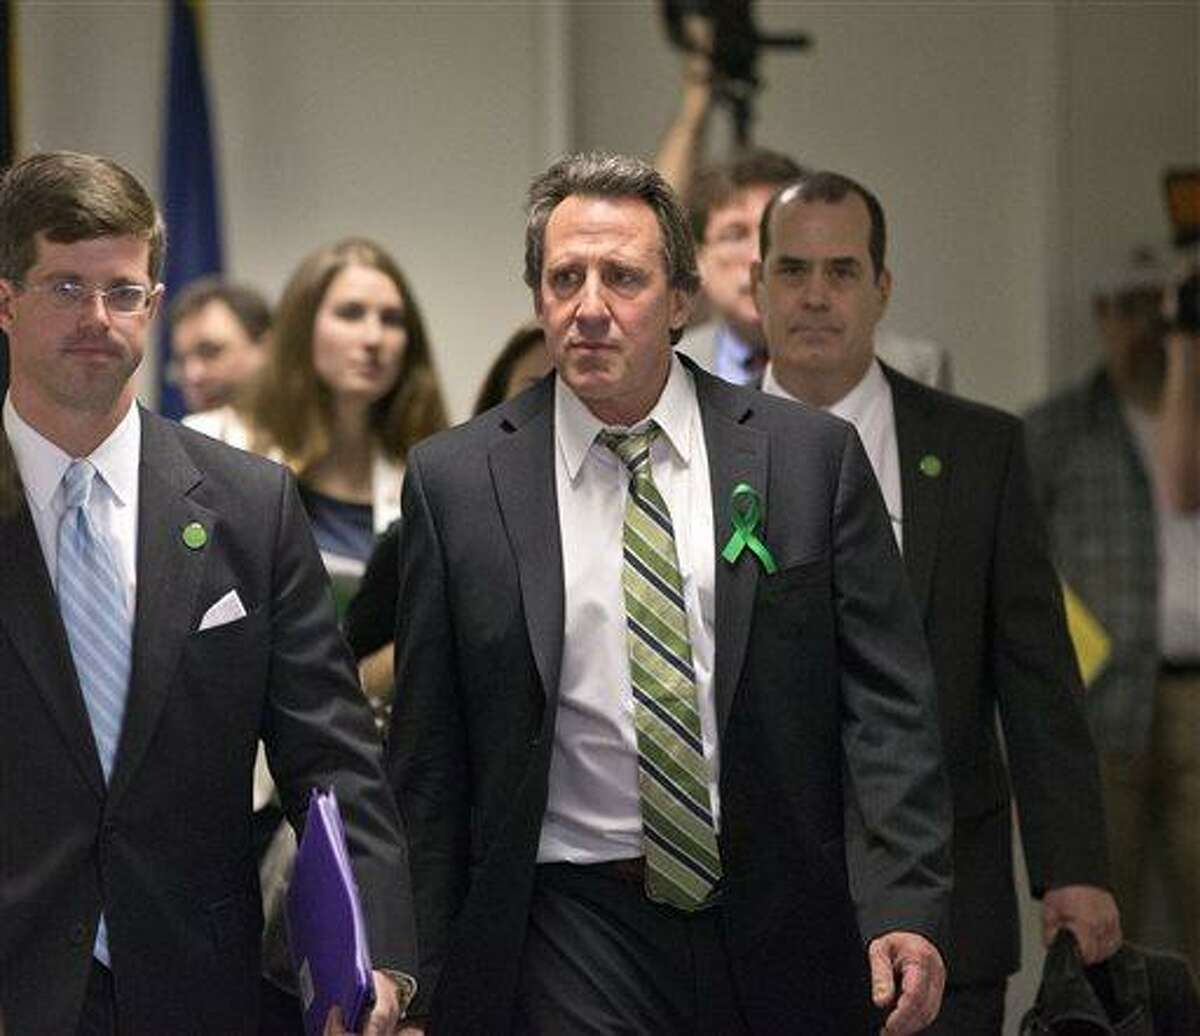 FILE - In a Tuesday, April 9, 2013 file photo, Neil Heslin, center, whose 6-year-old son Jesse was killed in the mass shooting in Newtown, Conn., arrives with other victims' families to meet privately with senators on Capitol Hill in Washington. Heslin was scheduled to appear in Connecticut Superior Court Wednesday, May 8, 2013 on larceny and other charges. Heslin had five separate cases listed on the docket in Milford Superior Court. He has pleaded not guilty to all the charges. (AP Photo/J. Scott Applewhite)